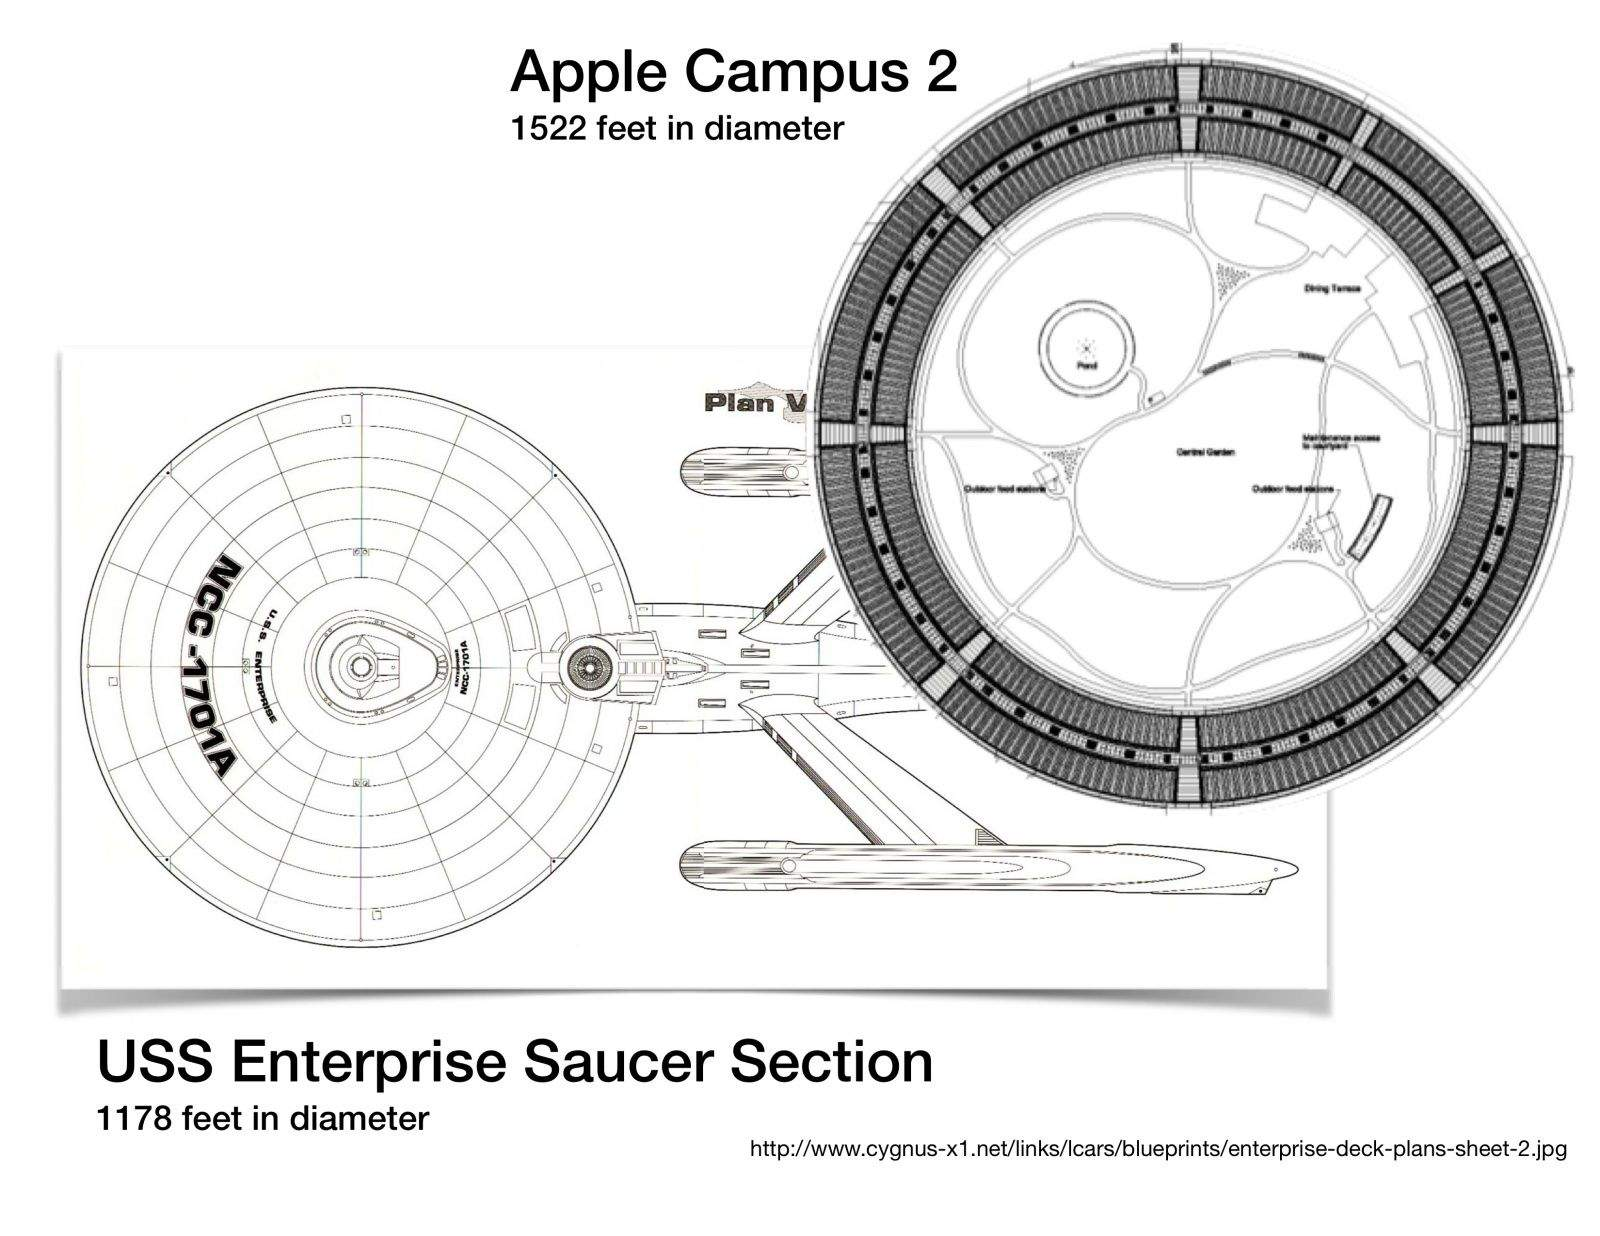 All You Need To Know About Apple Campus 2